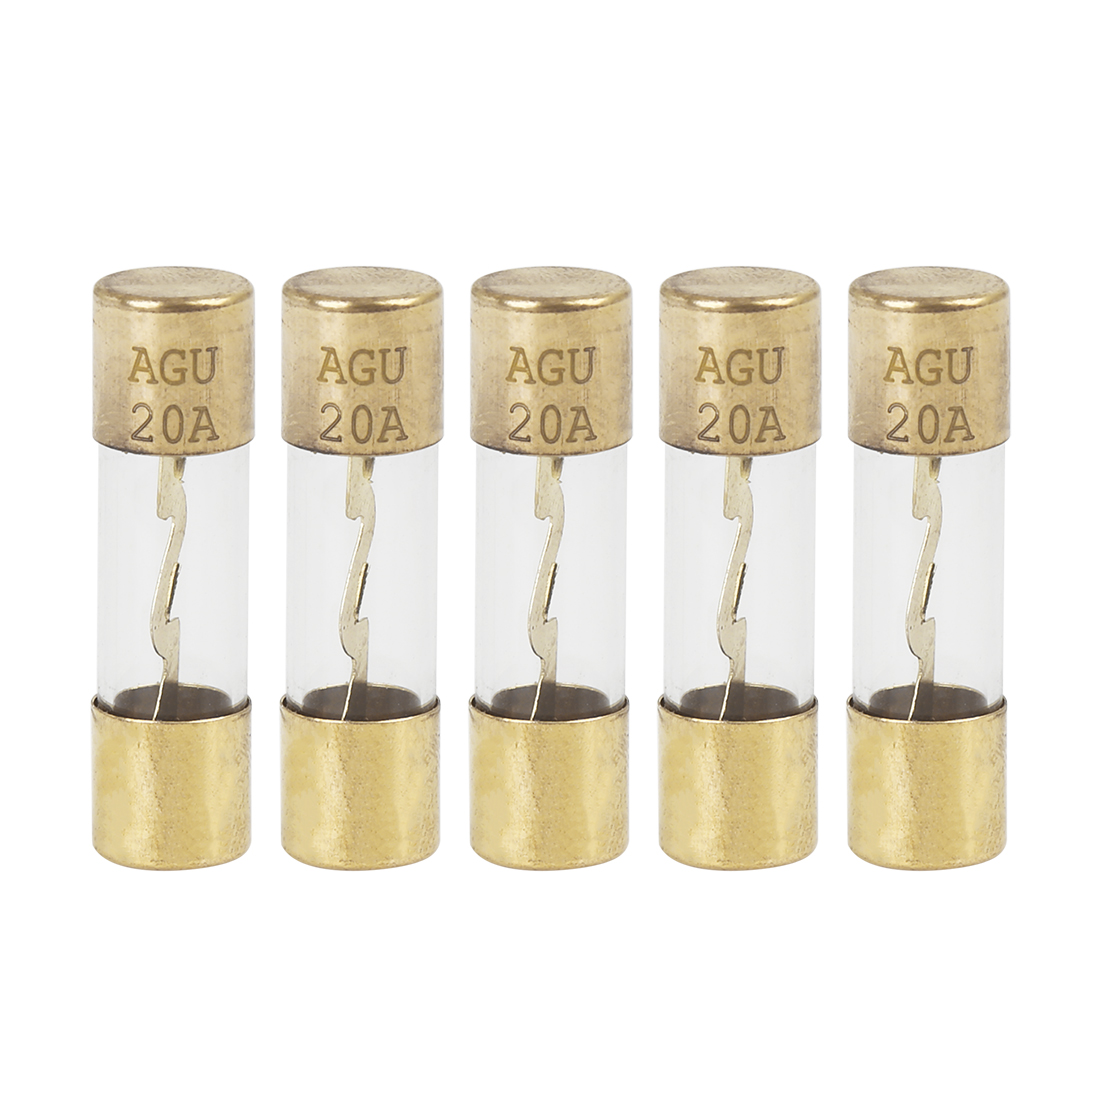 5pcs 20 Amp AGU Fuse Gold Tone Plated for Car Audio Video Stereo